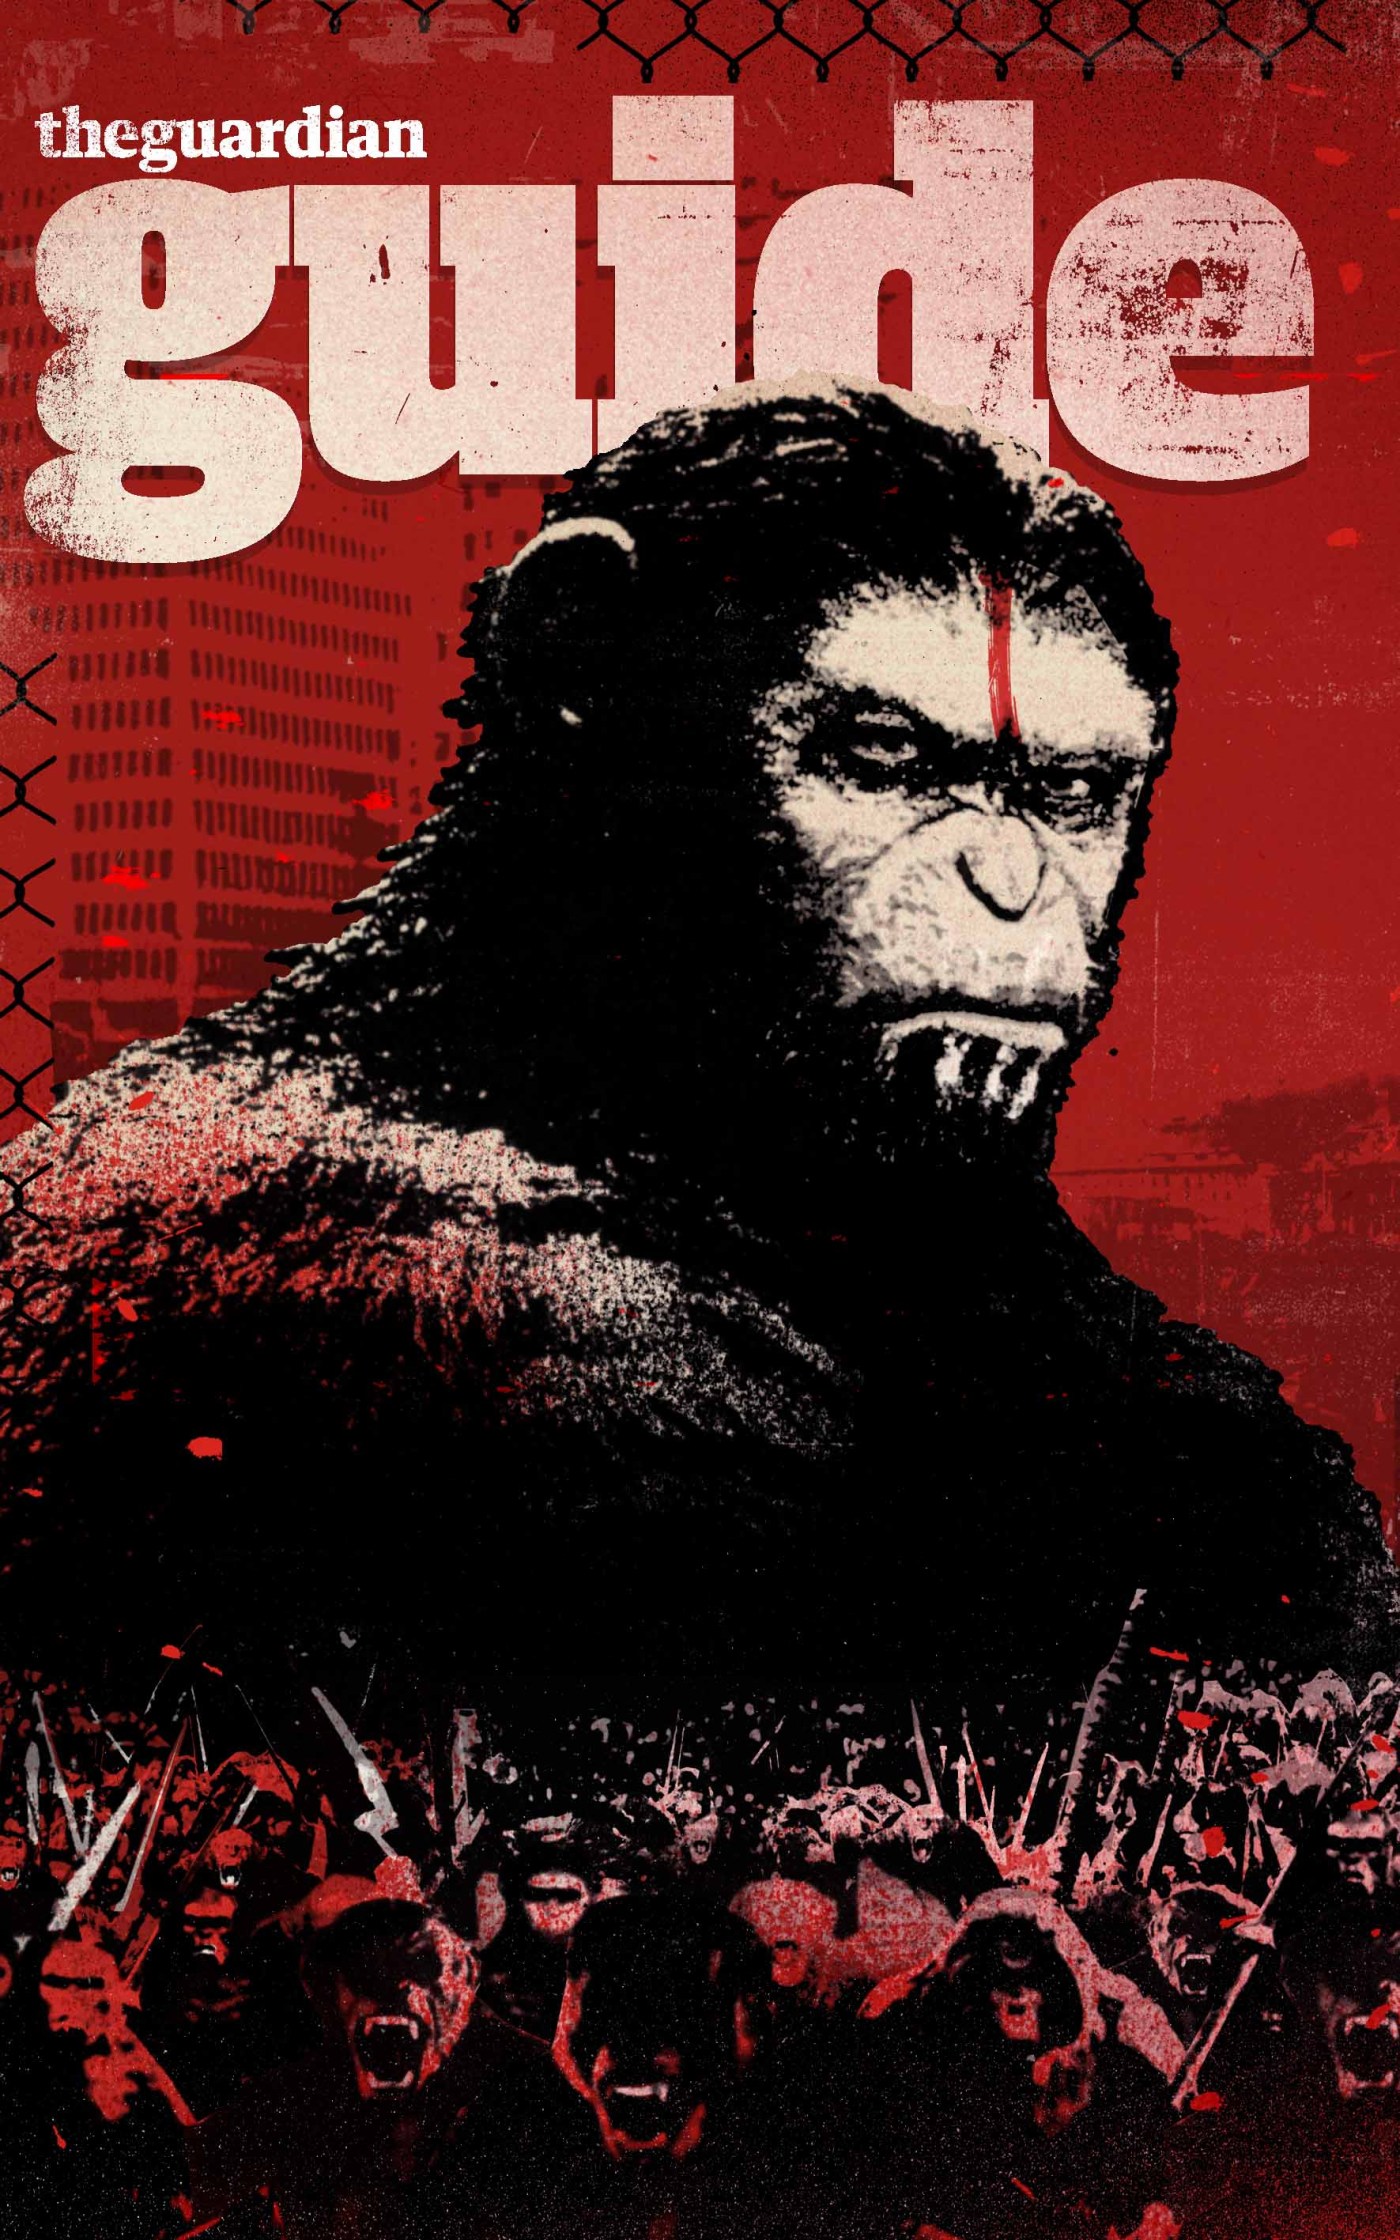 Planet Of The Apes / The Guardian Guide